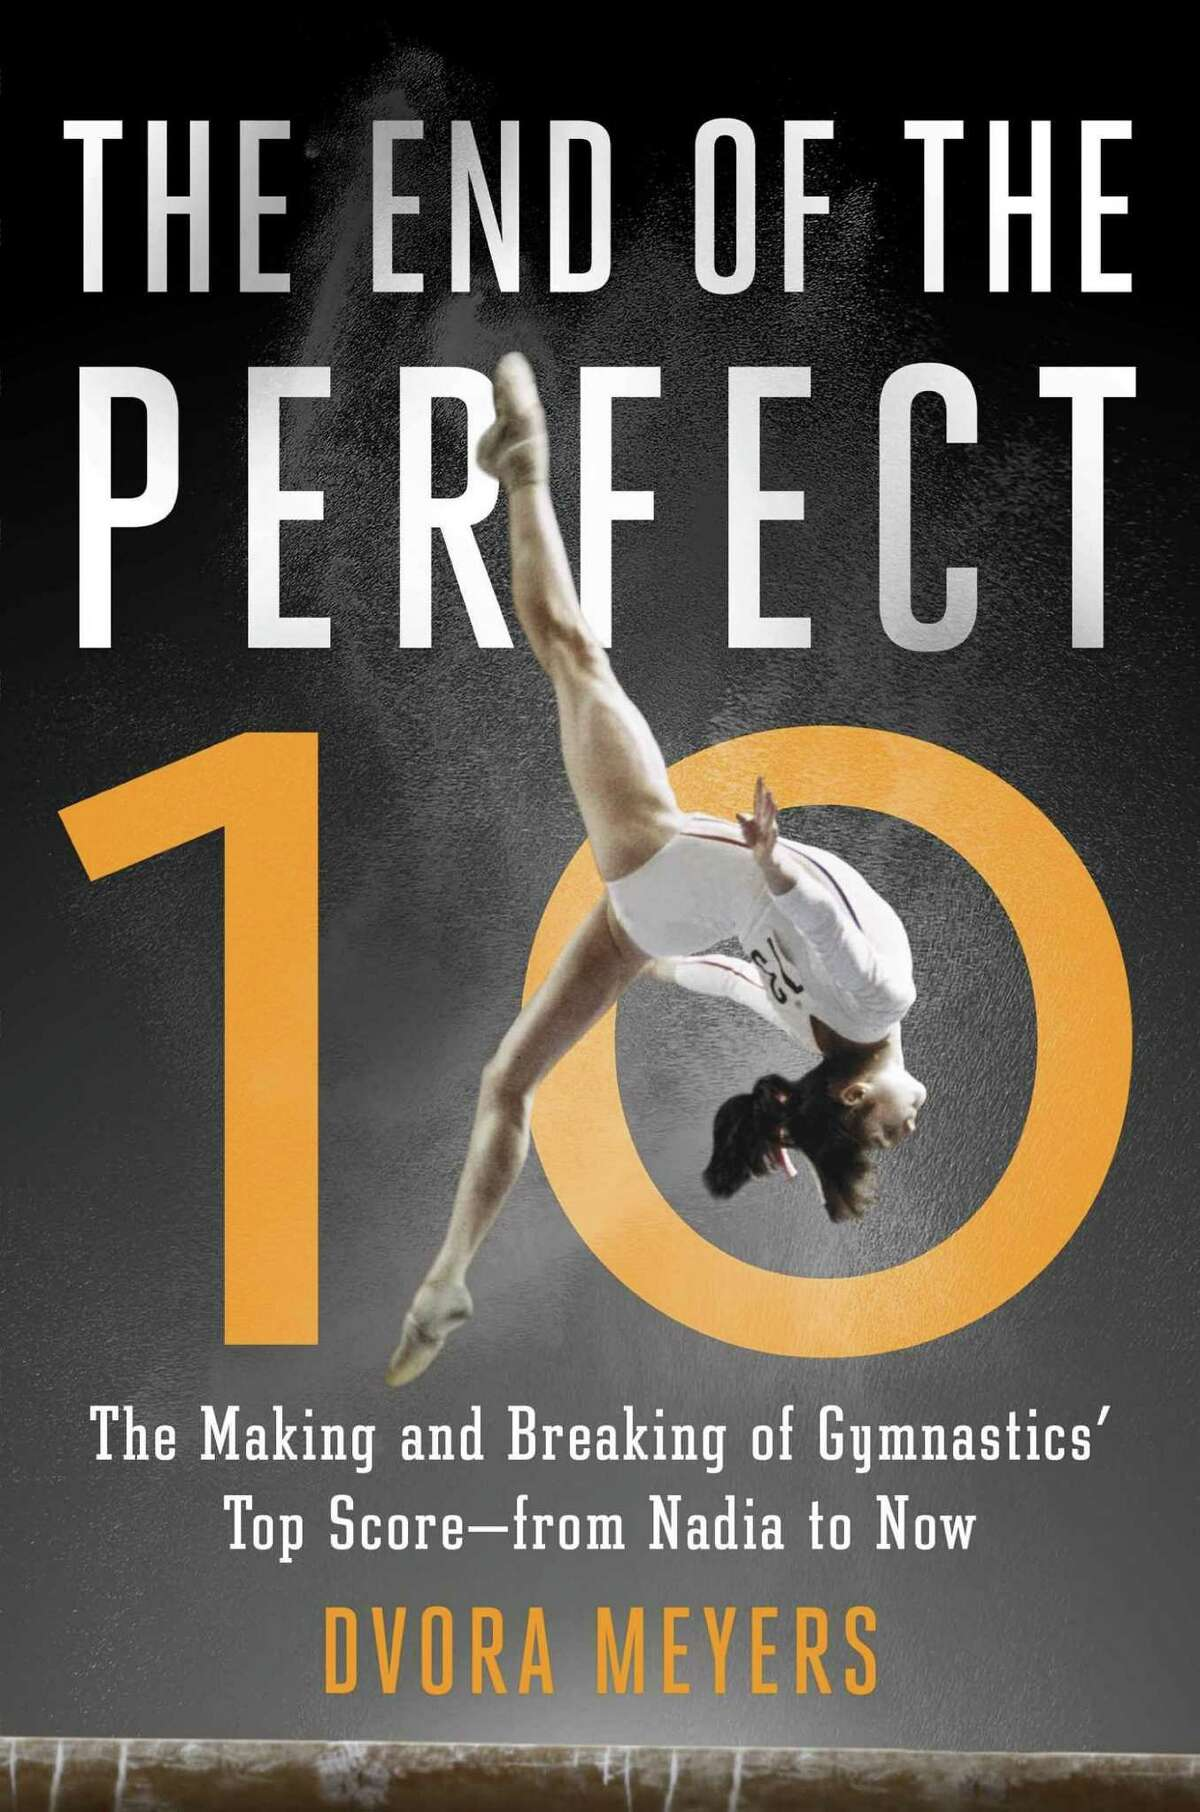 """The End of the Perfect 10 By Dvora Meyers After controversy over scoring in the 2004 Olympics, elite gymnastics abandoned the 10-point scale and switched to an open-ended scoring system. But even if gymnasts can no longer strive for a """"perfect"""" 10.0 score, the competition is getting more difficult and more elite. This book examines the evolution of women's gymnastics and looks ahead to Olympic contests in the future."""